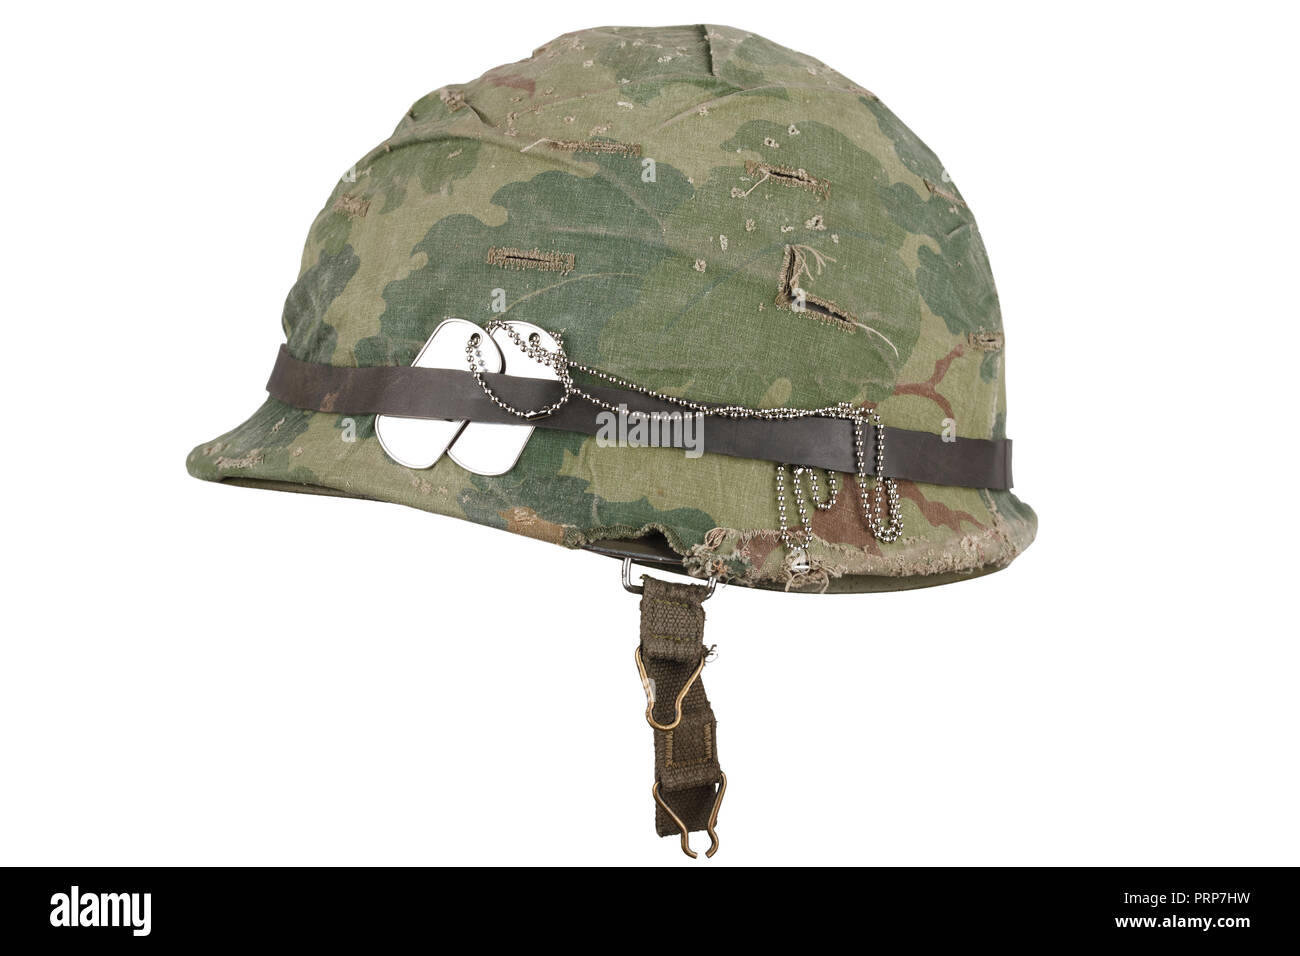 Us Army Helmet Vietnam War Period With Camouflage Cover Goggles And Dog Tags Isolated On White Stock Photo Alamy